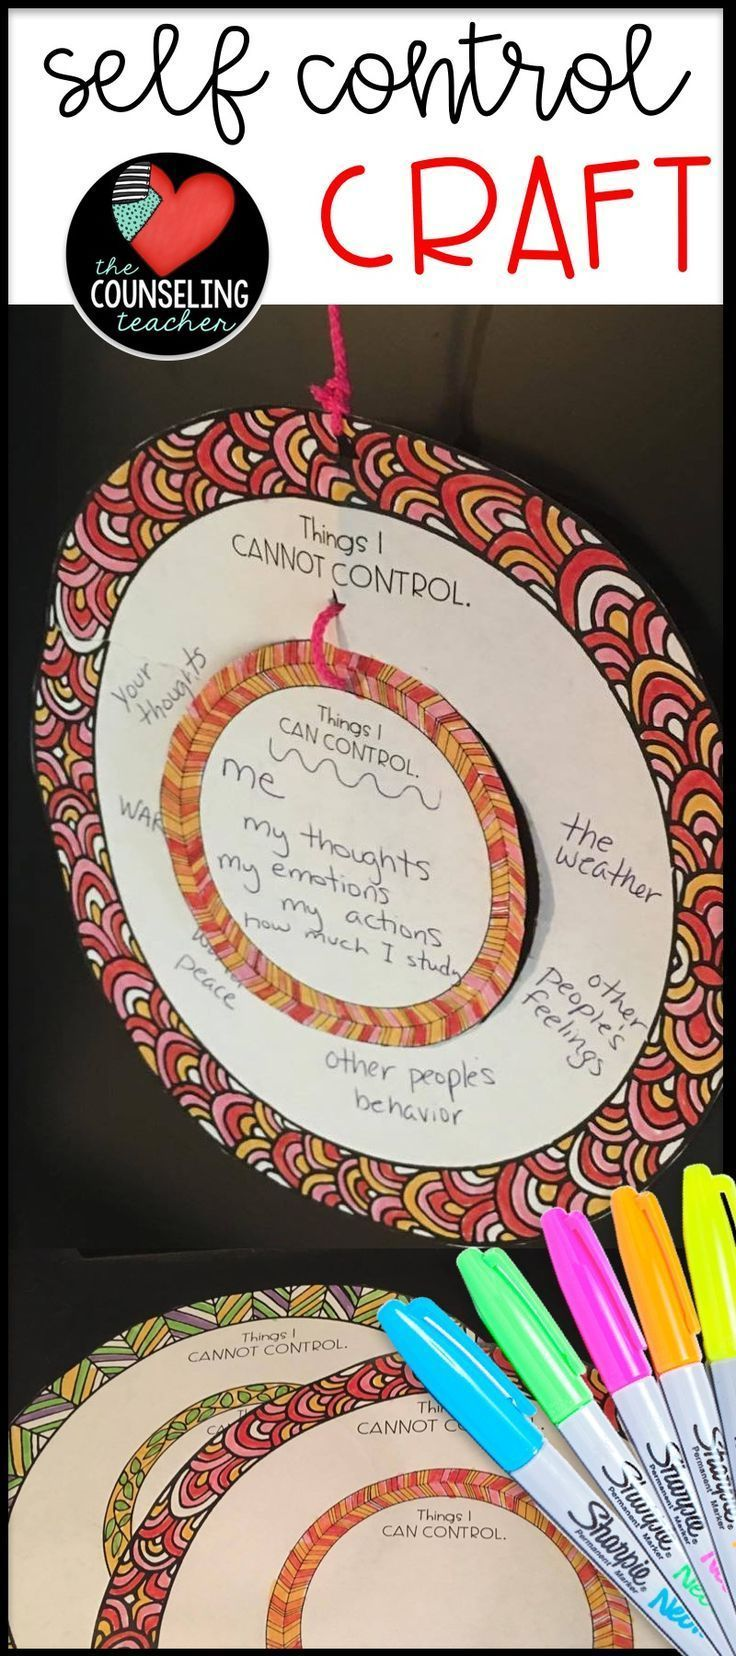 Students will enjoy this calming zen activity that helps them distinguish between things that they can control and those that they cannot control. Once they learn to refocus on the things that they can control, they will feel more self control. The focus